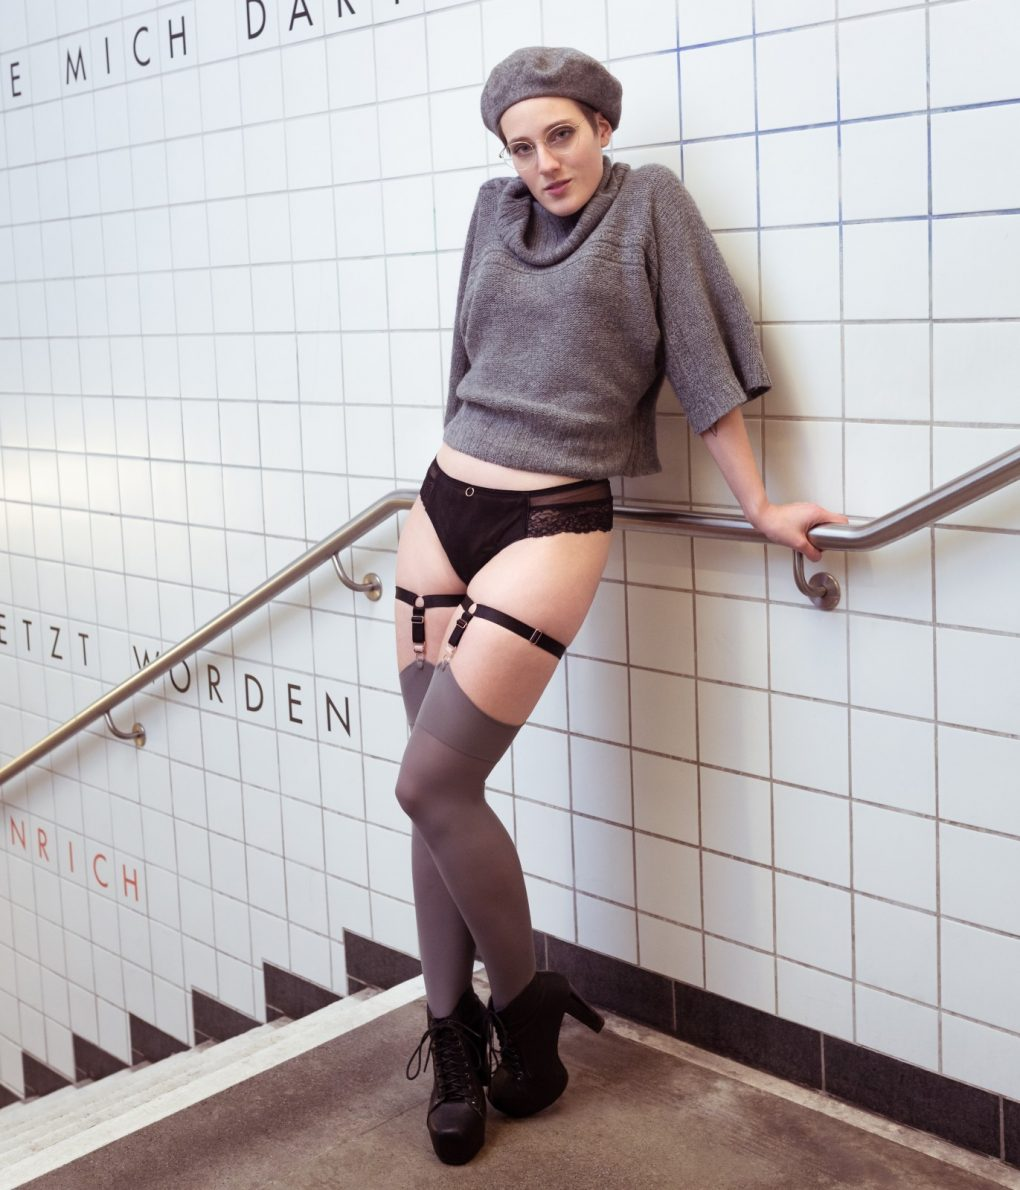 No Pants Subway Ride 2019 Berlin Suspenders Brazilian